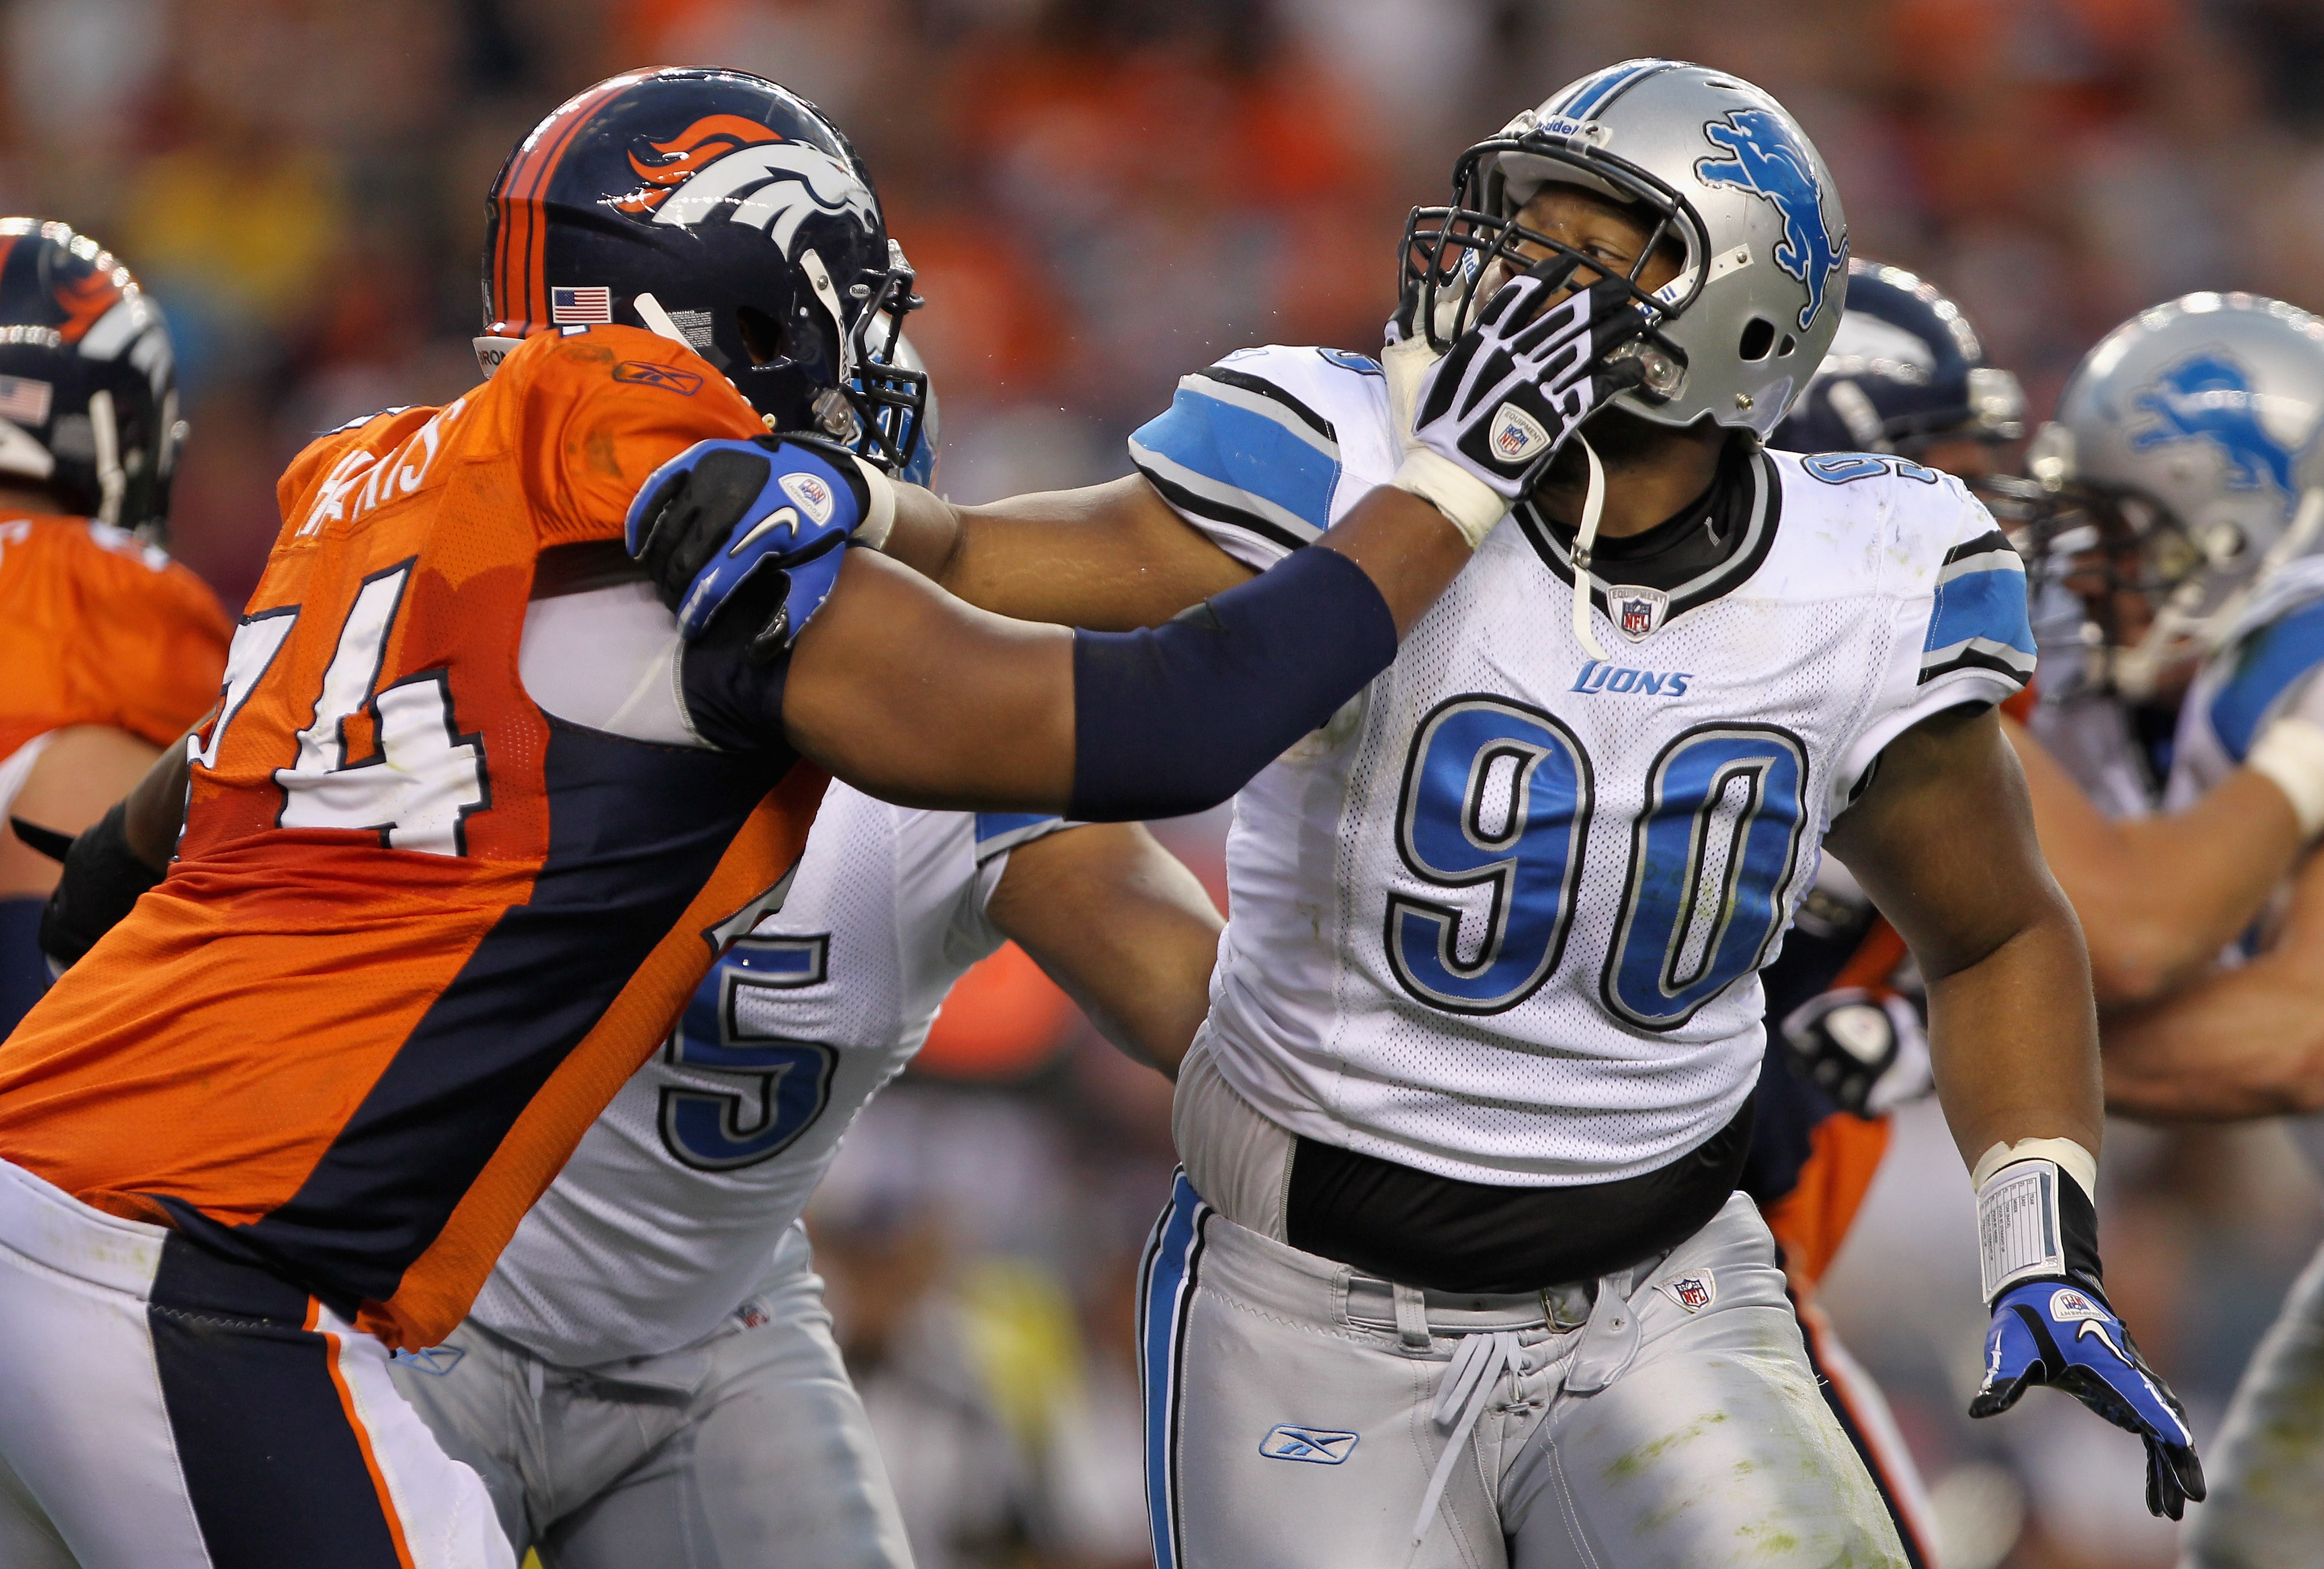 DENVER - AUGUST 21:  Defensive tackle Ndamukong Suh #90 of the Detroit Lions battles the blocking of offensive tackle Ryan Harris #74 of the Denver Broncos during preseason NFL action at INVESCO Field at Mile High on August 21, 2010 in Denver, Colorado.